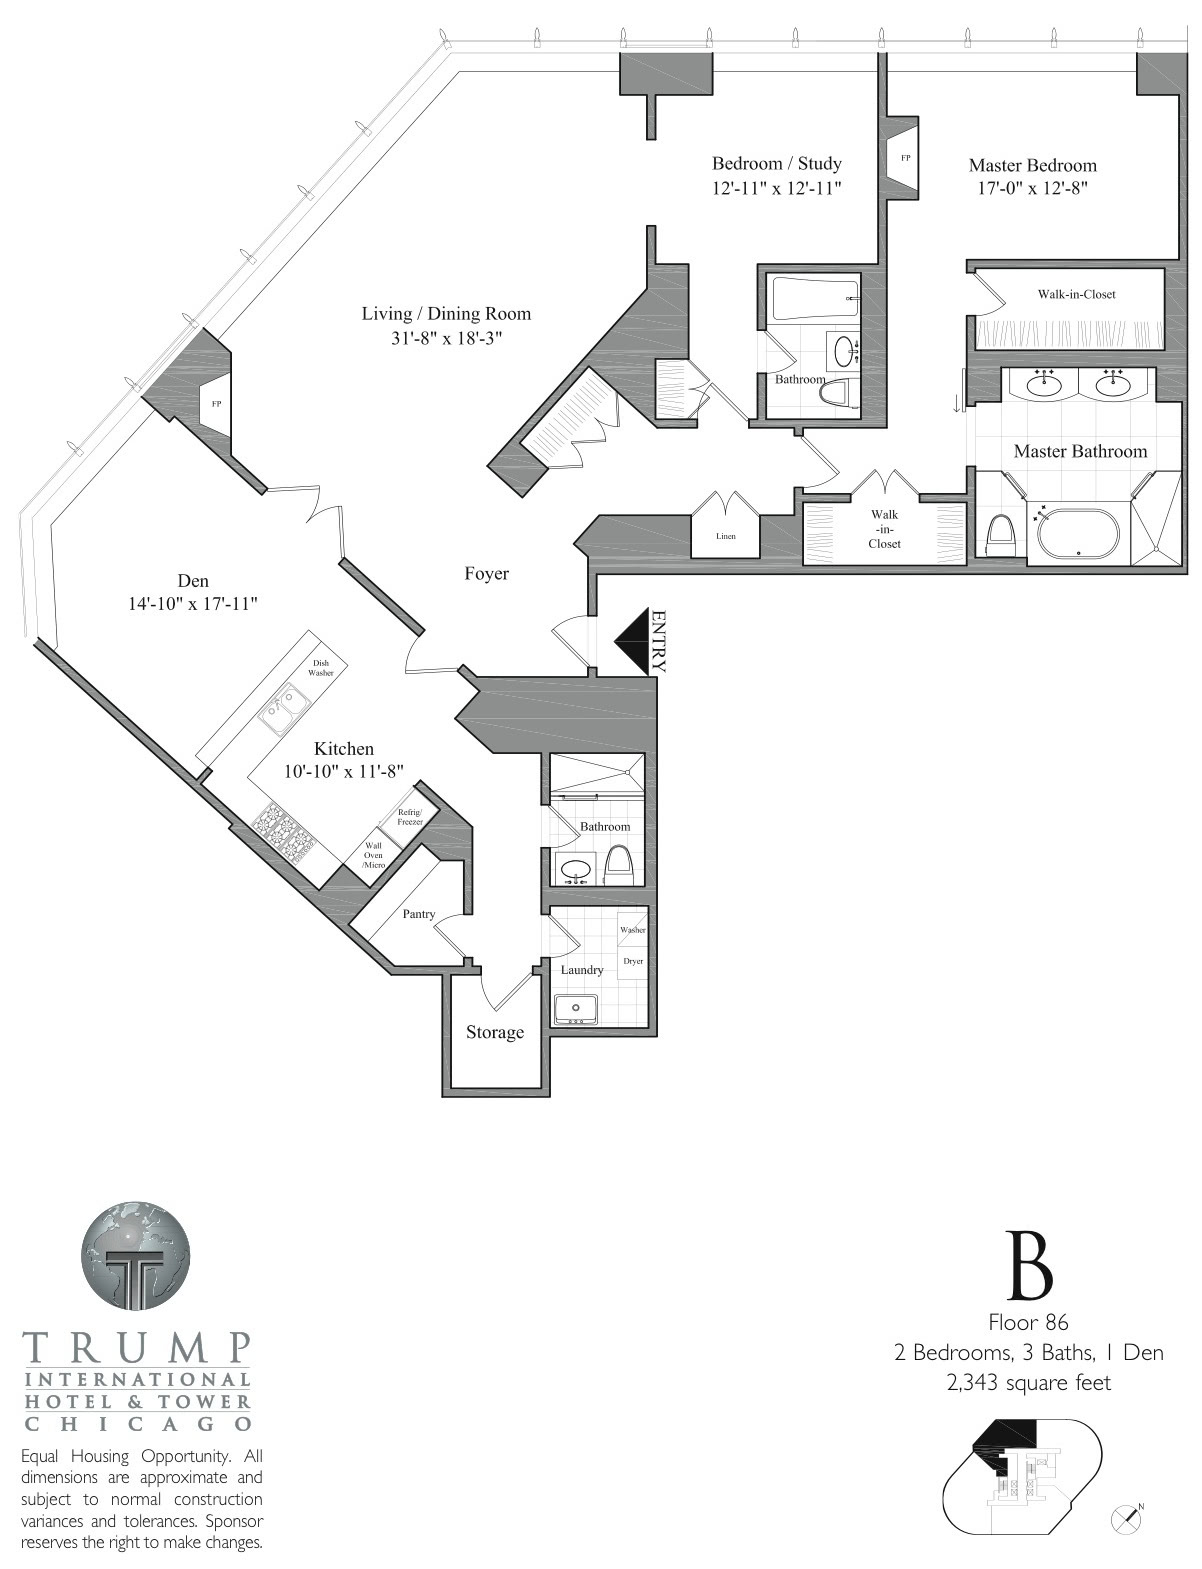 Trump Tower Chicago, 401 N Wabash, floor plans, views